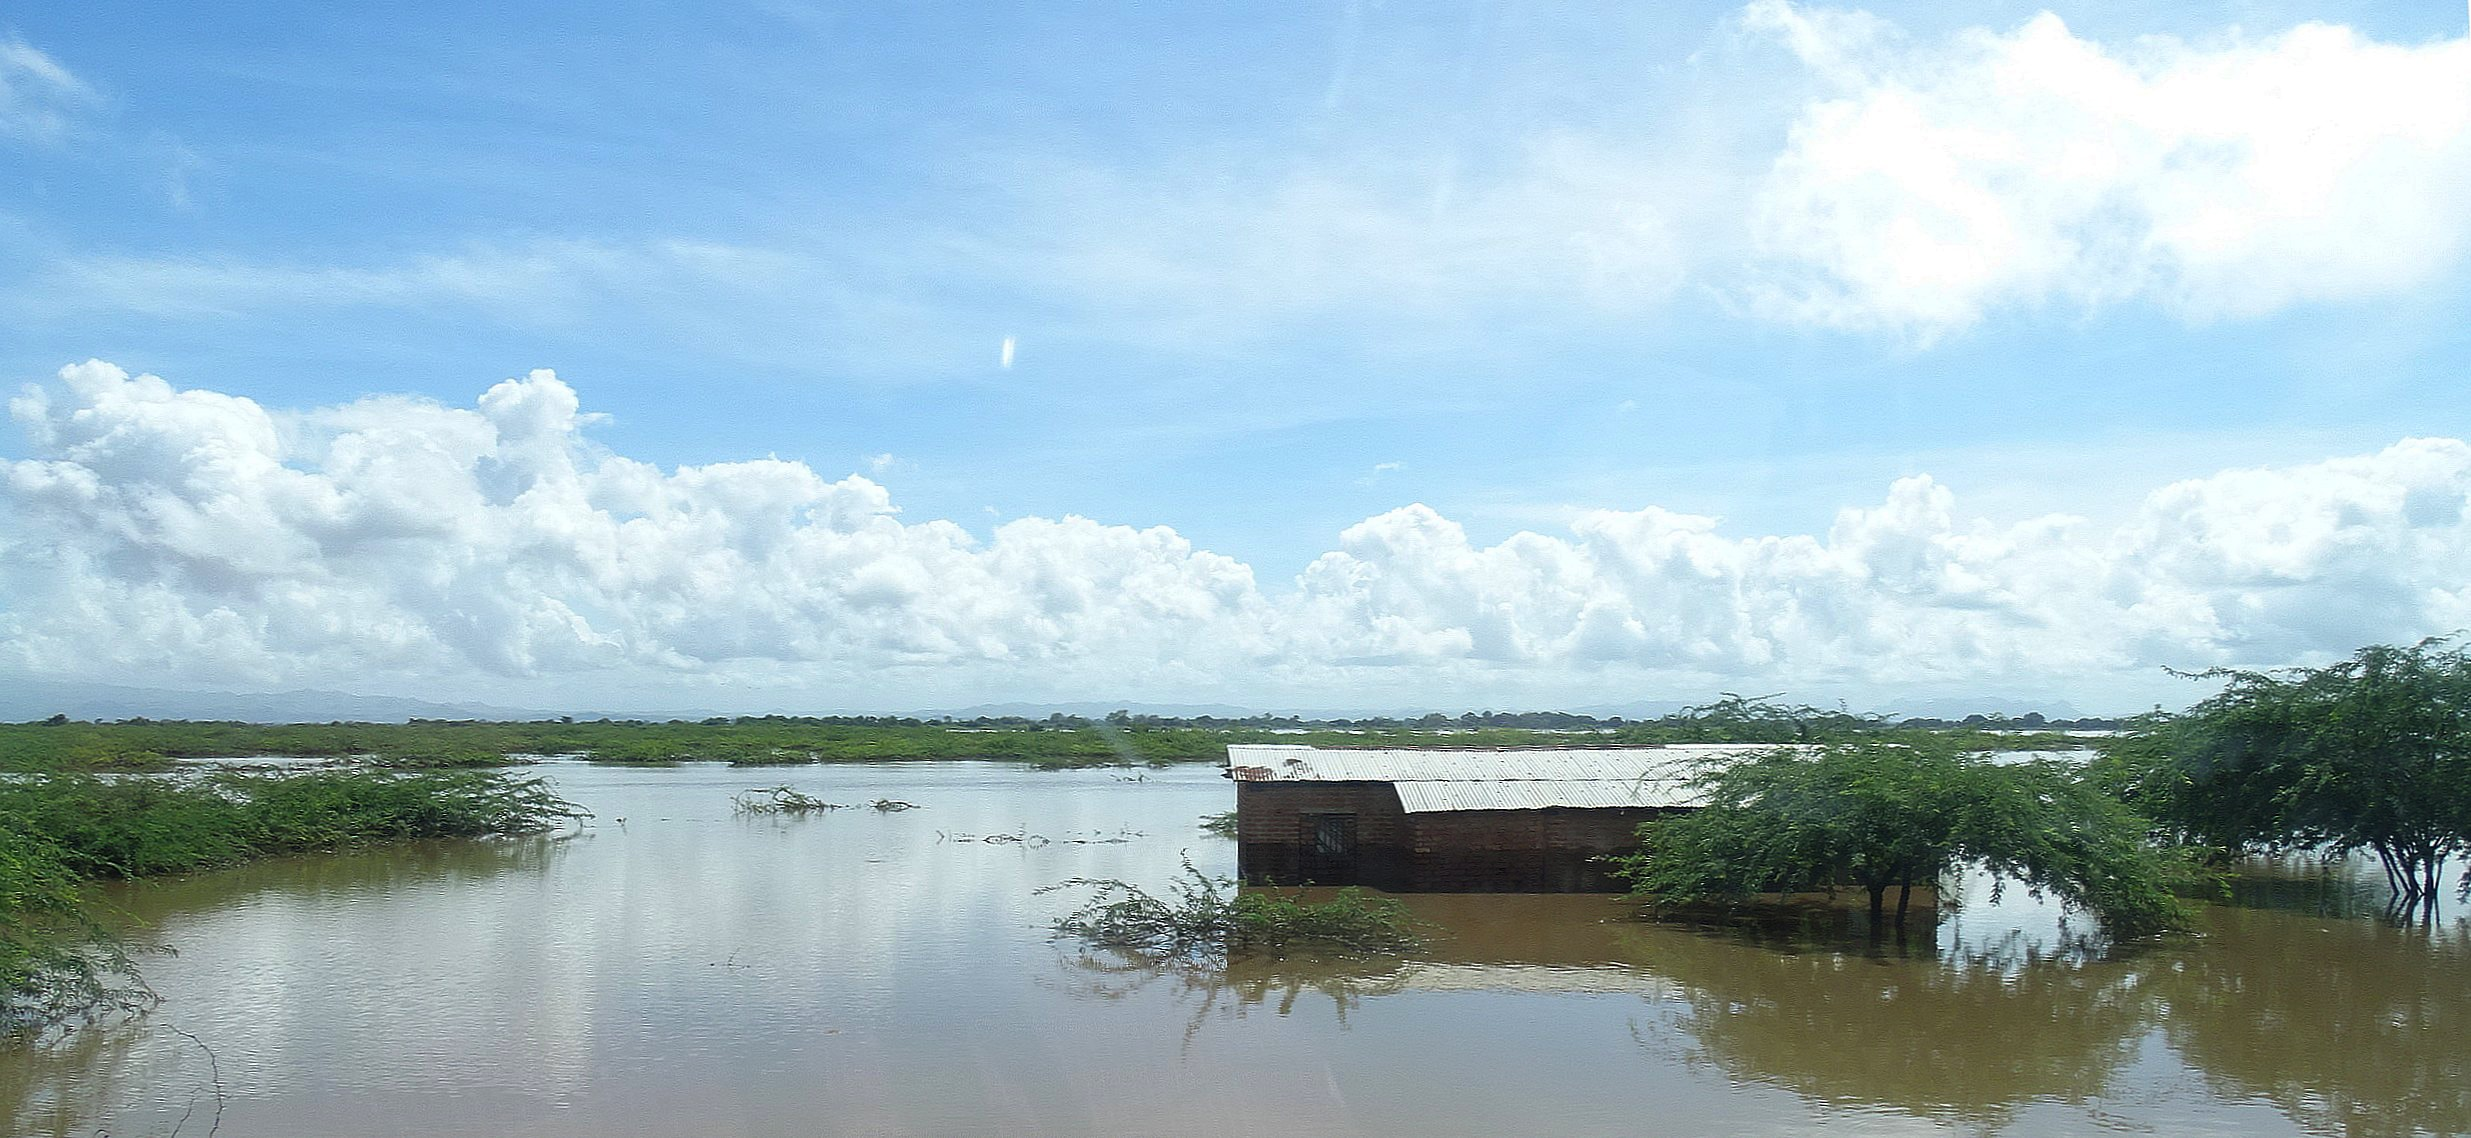 This is one of the submerged homes hit hard by flooding after Cyclone Idai in Malawi. Family belongings and livestock were swept away by the rising water. Photo by Francis Nkhoma, UM News.